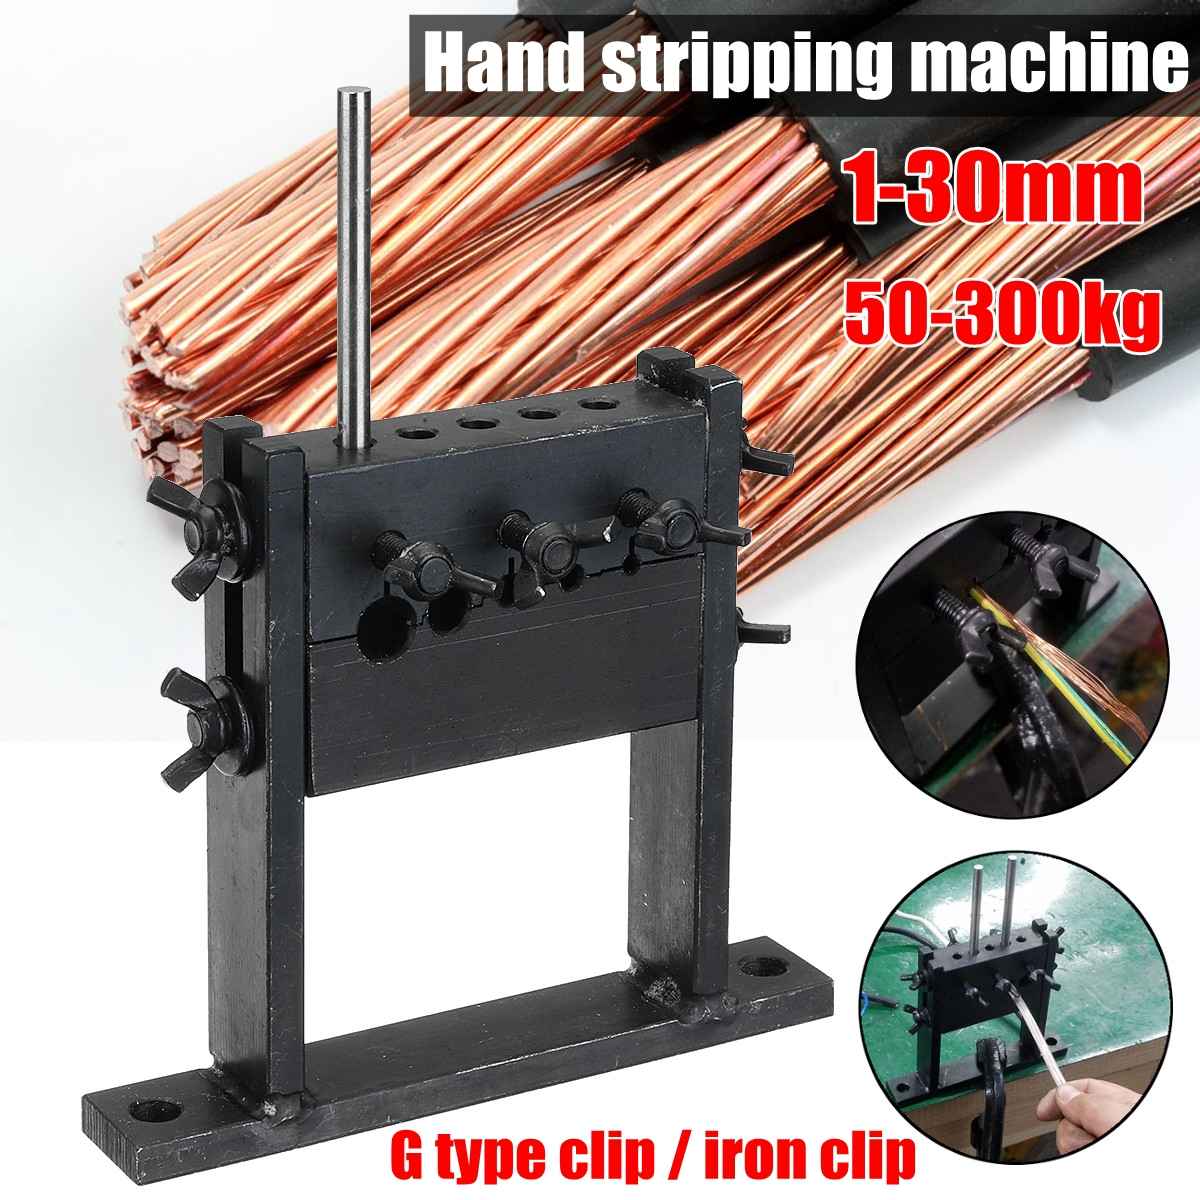 Buy Cable Peeling Machine And Get Free Shipping On Wiring Harness Machines India